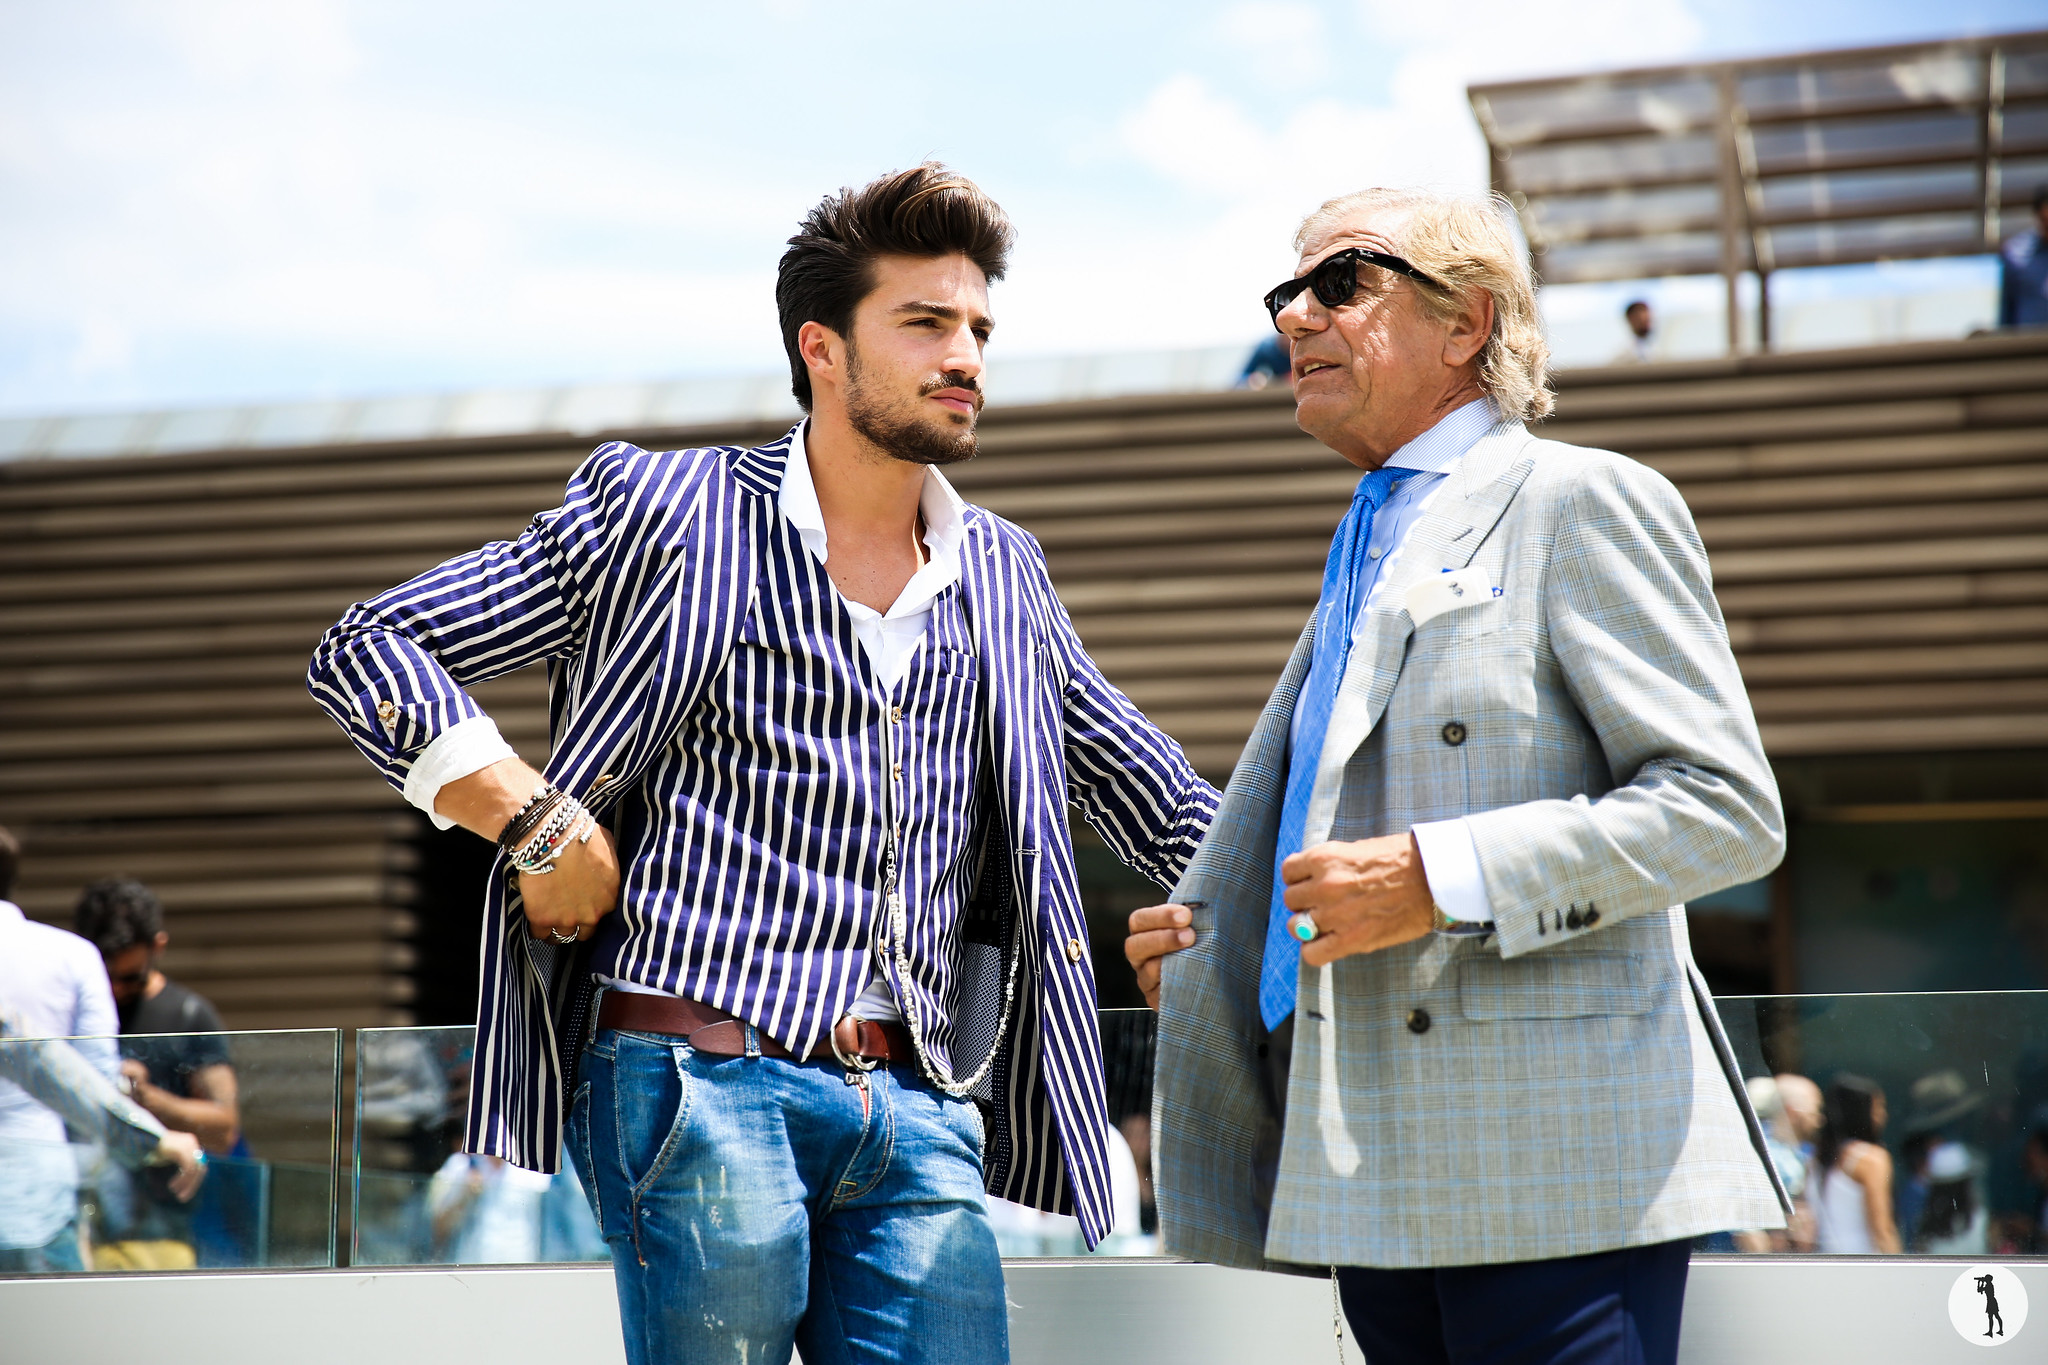 Mariano Di Vaio and Lino Ieluzzi at Pitti Uomo 88-2